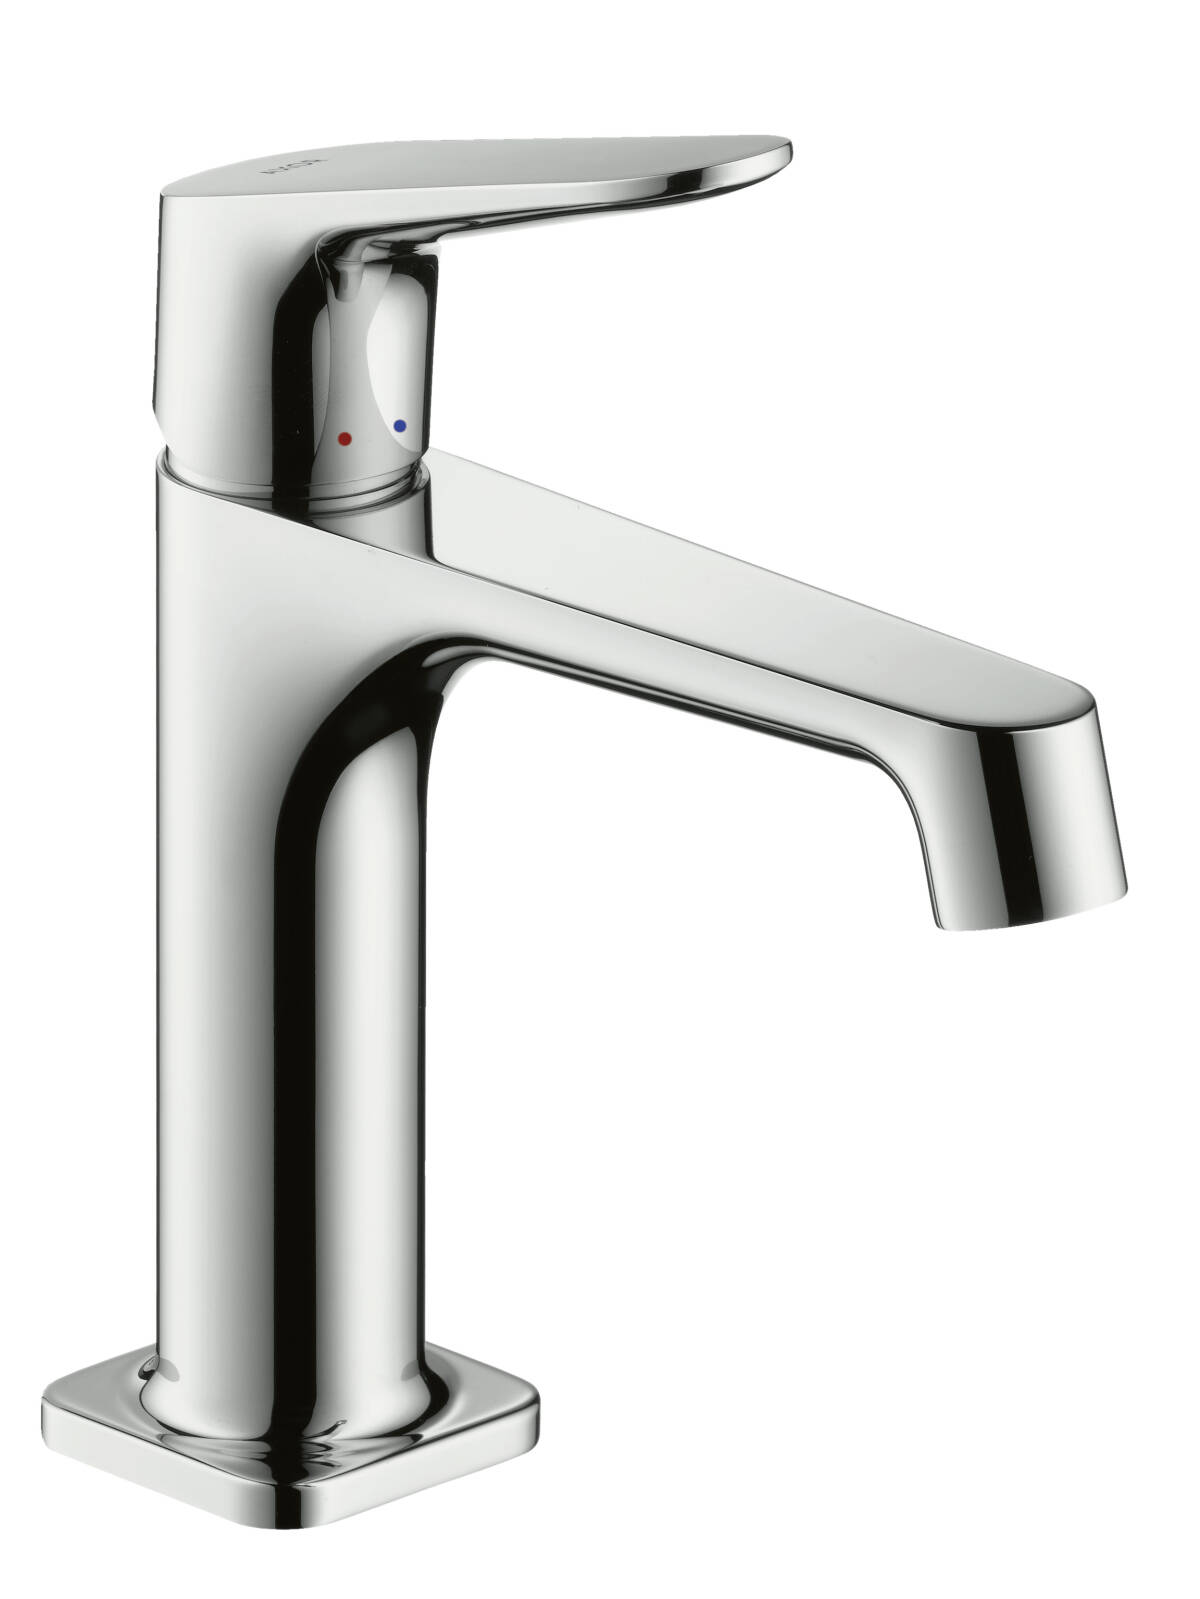 Single lever basin mixer 100 with pop-up waste set, Chrome, 34010000